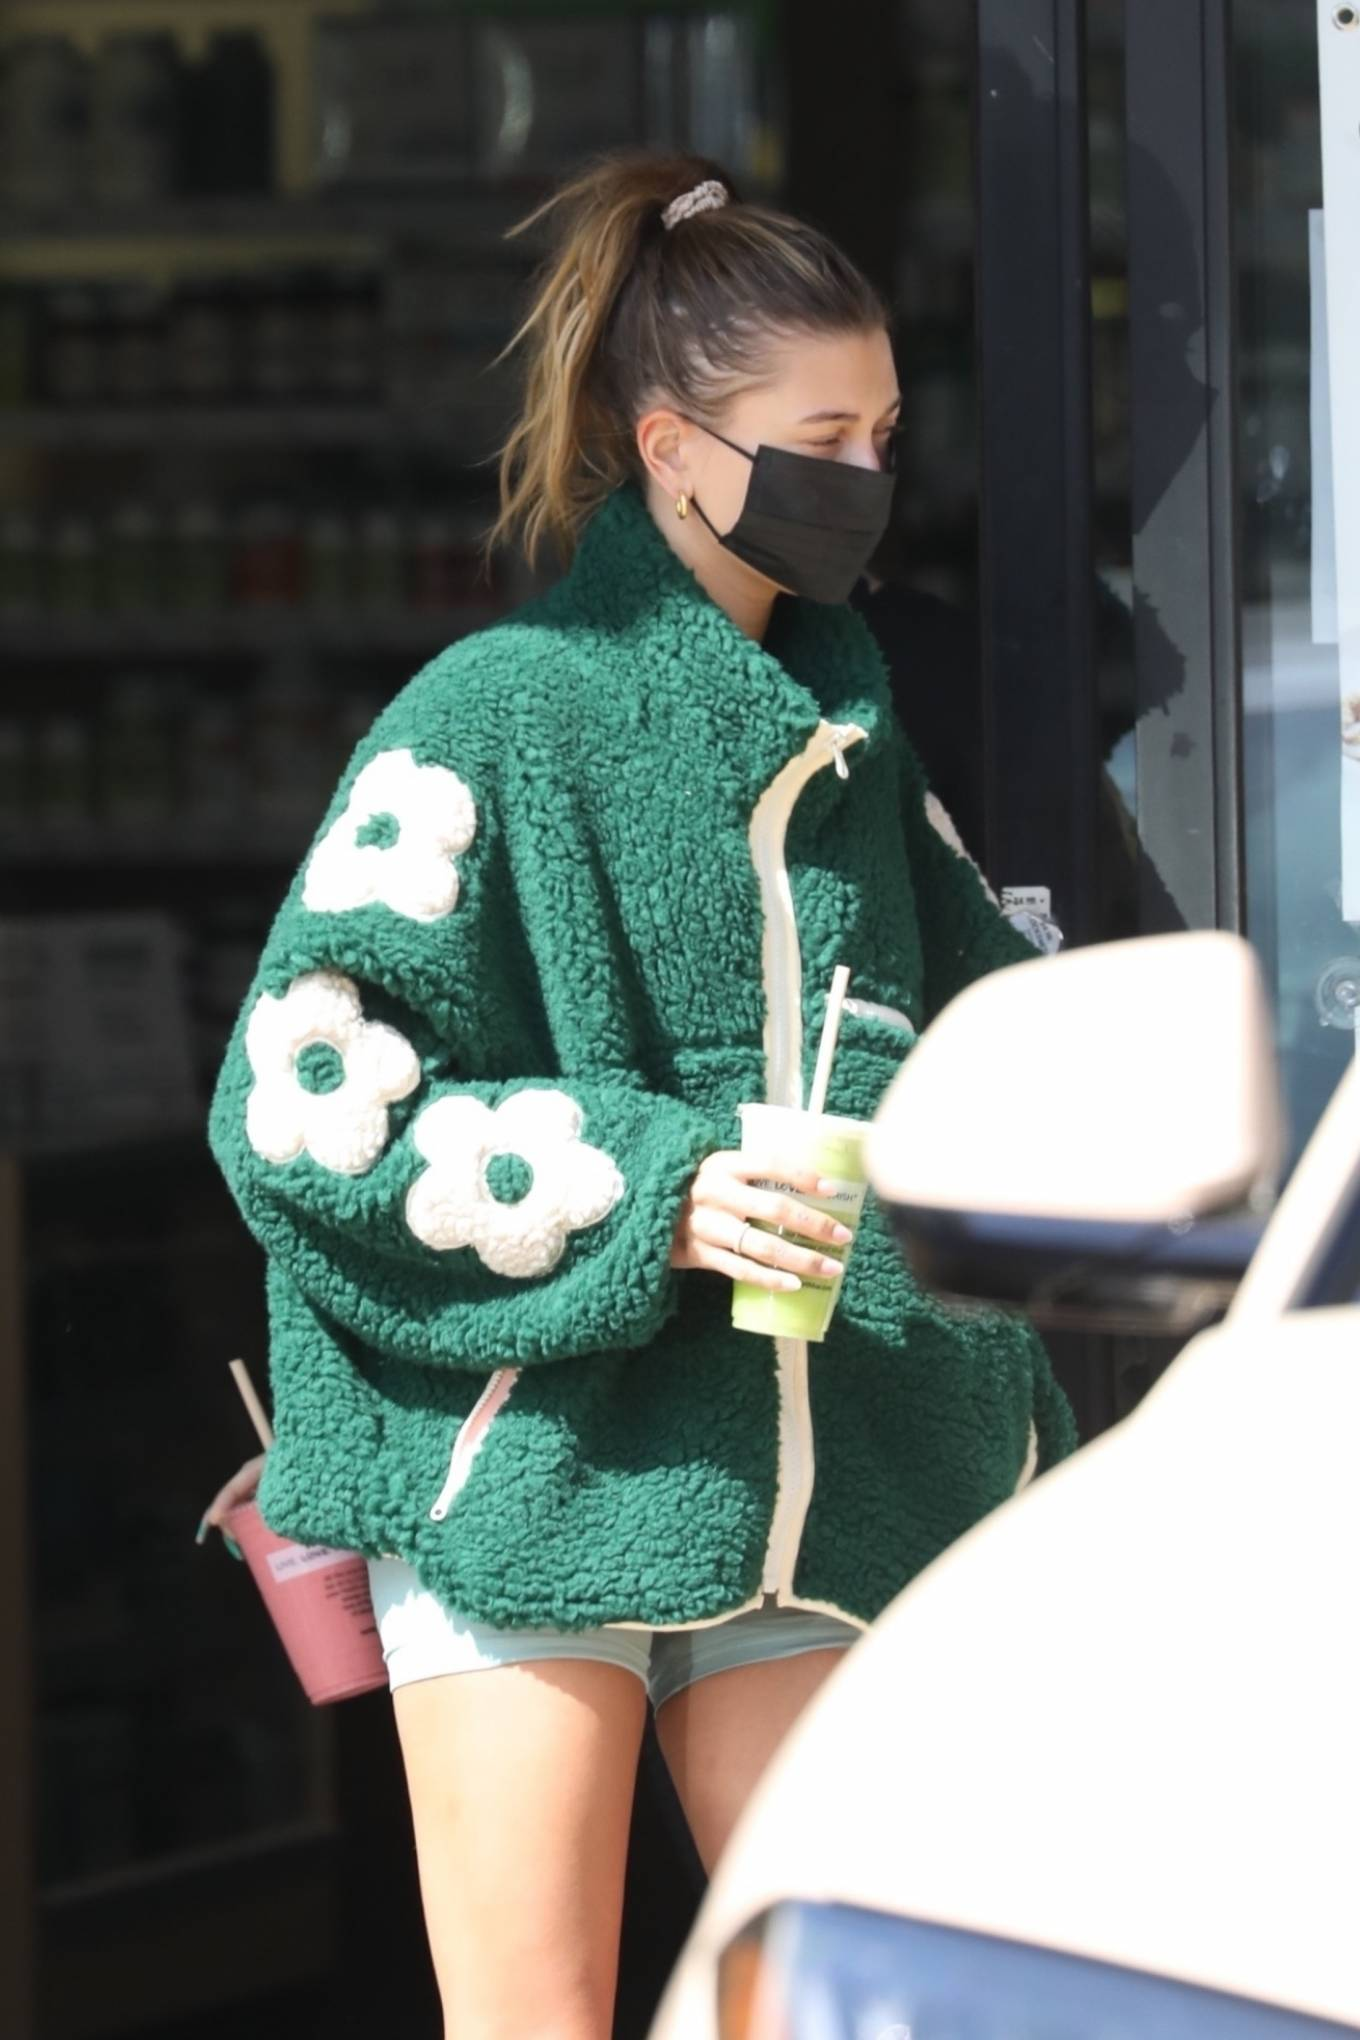 Hailey Bieber wearing a oversized green floral jacket with a fleece fabric, full sleeves and a funnel neck